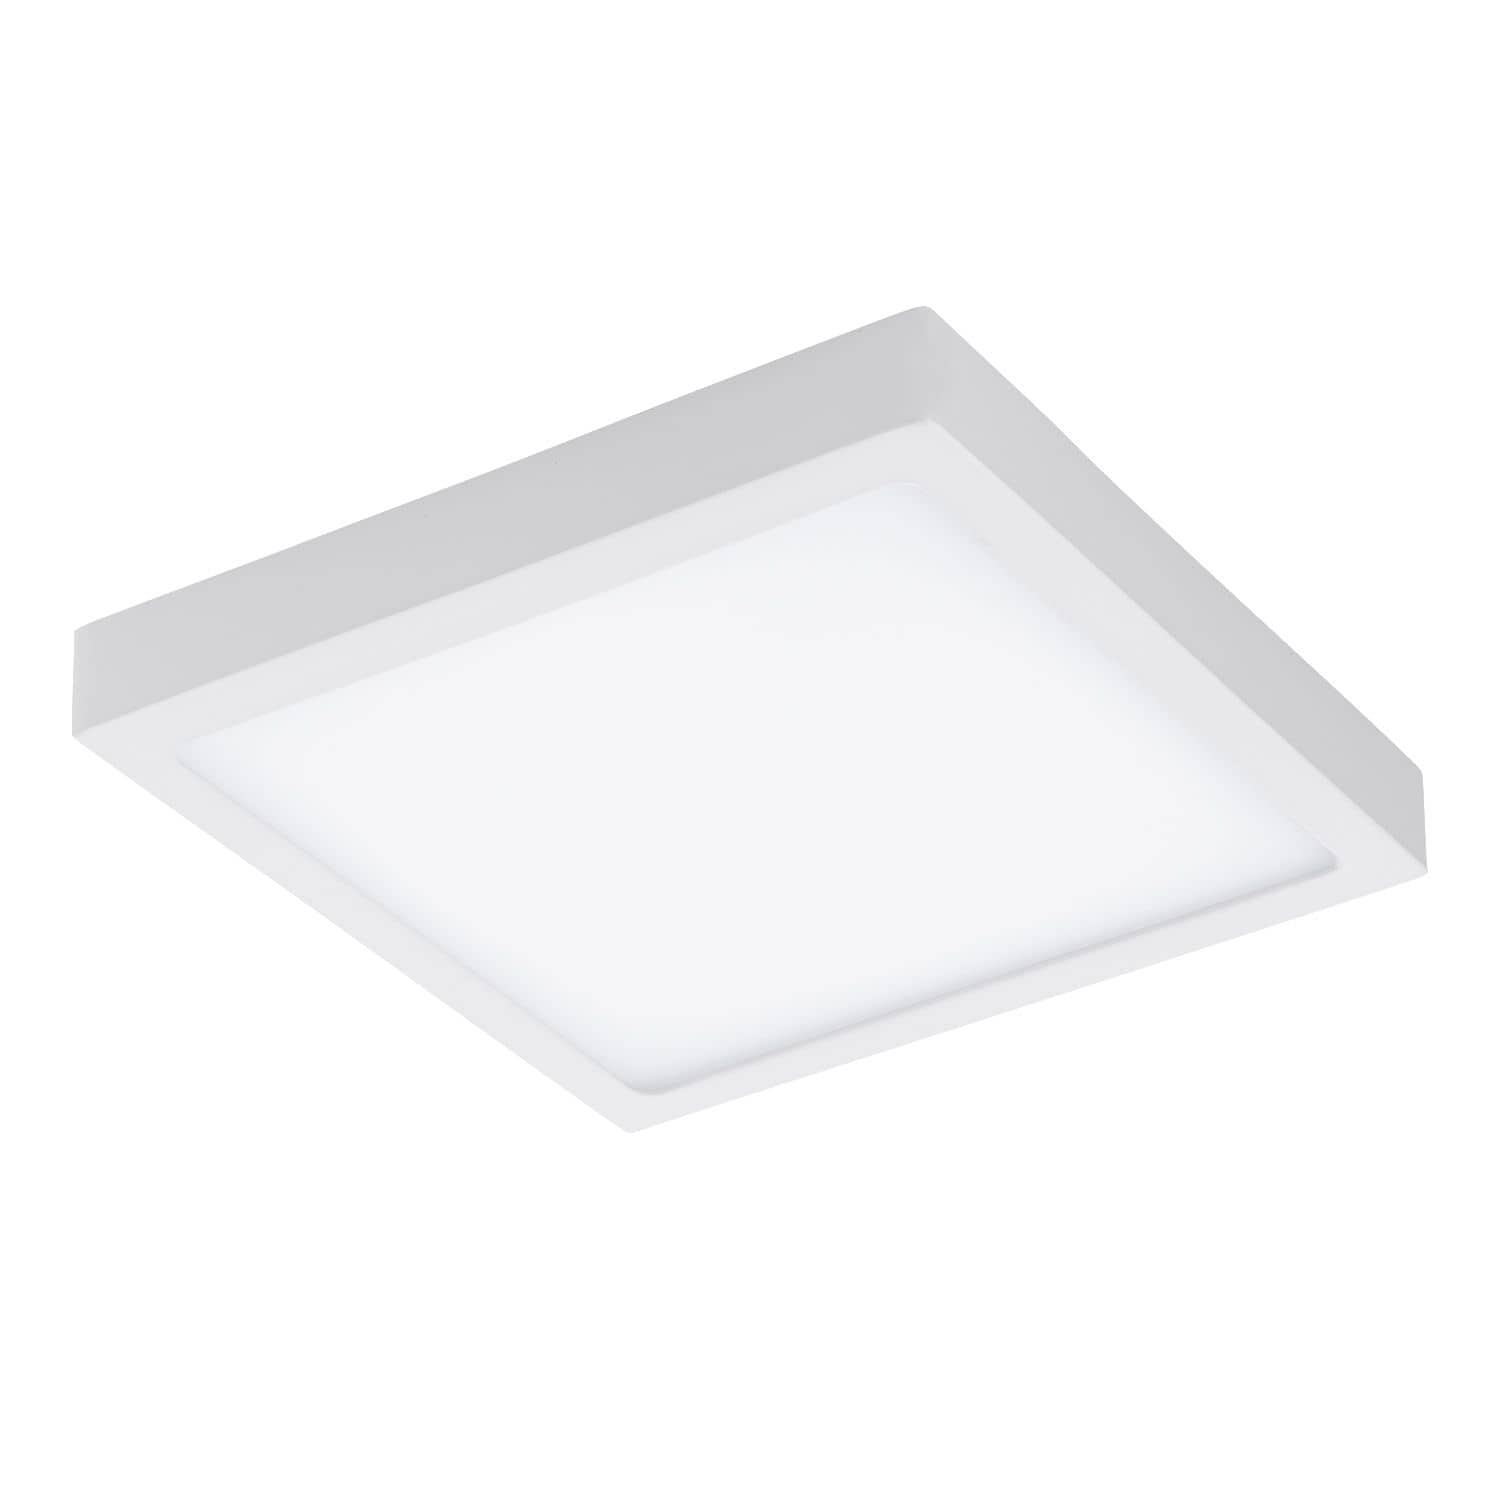 Awesome Badezimmer Led Deckenleuchte Ip44 Contemporary - Farbideen ...